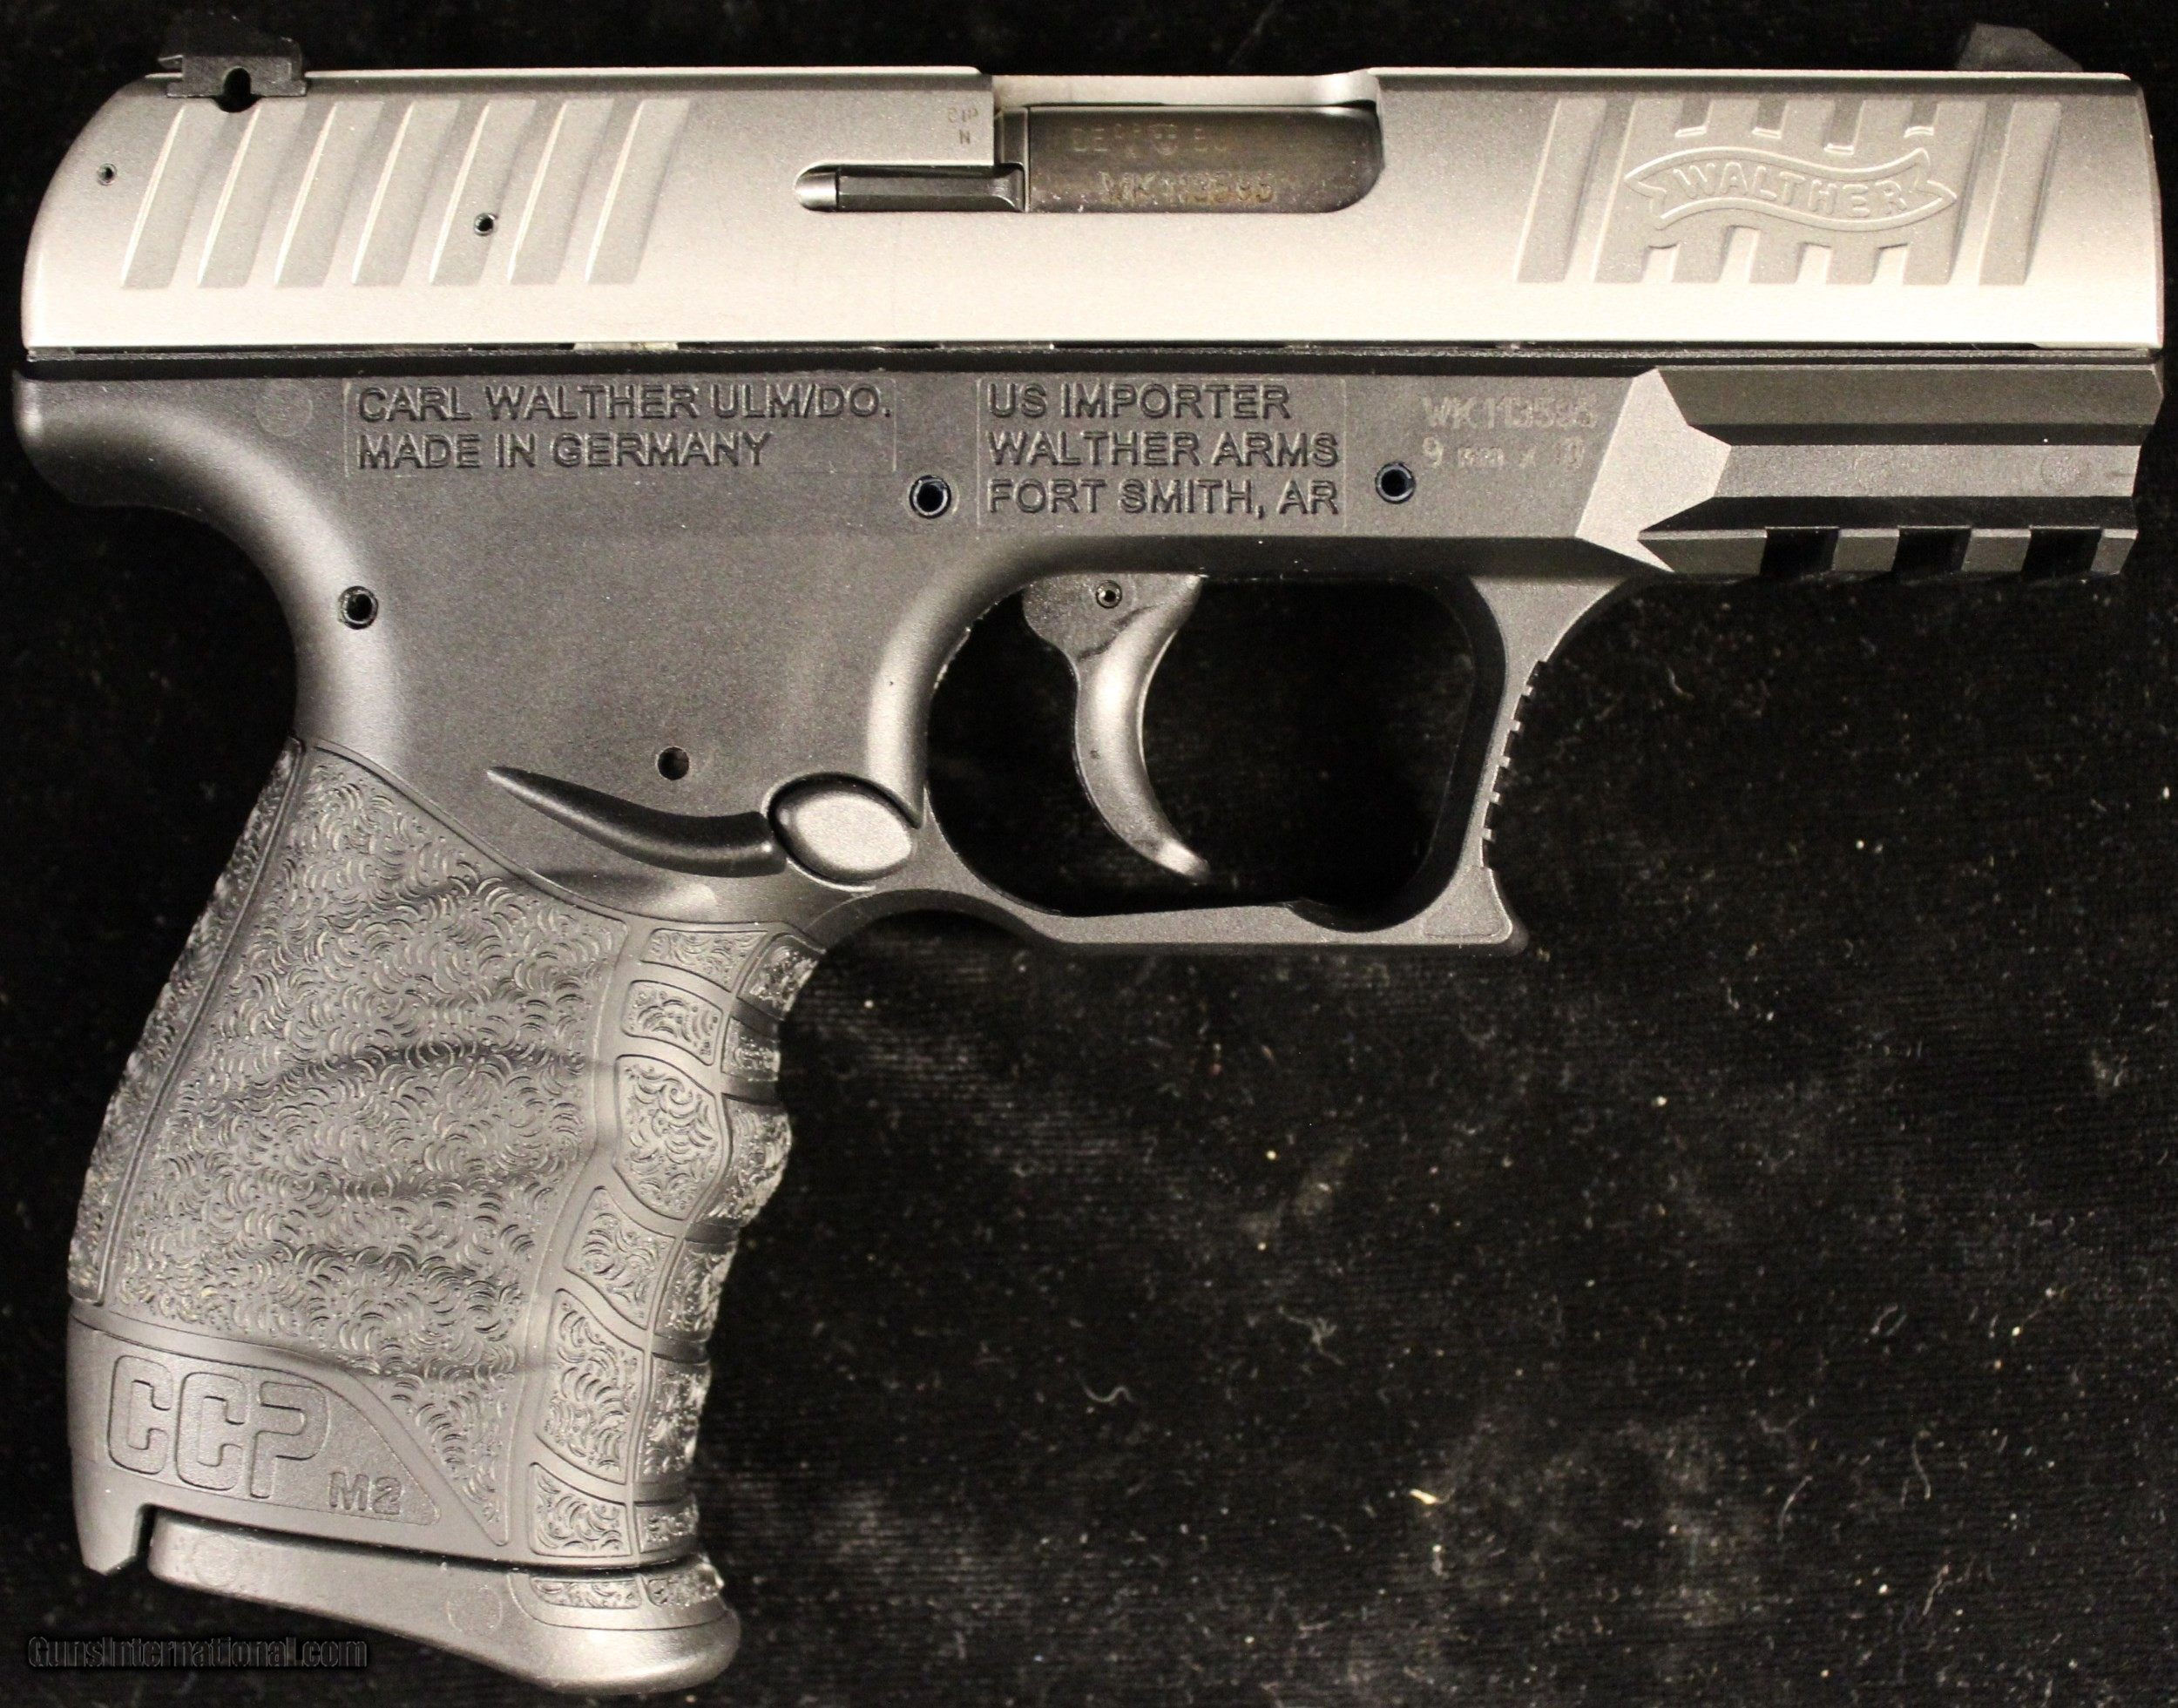 Walther CCP 9mm for sale